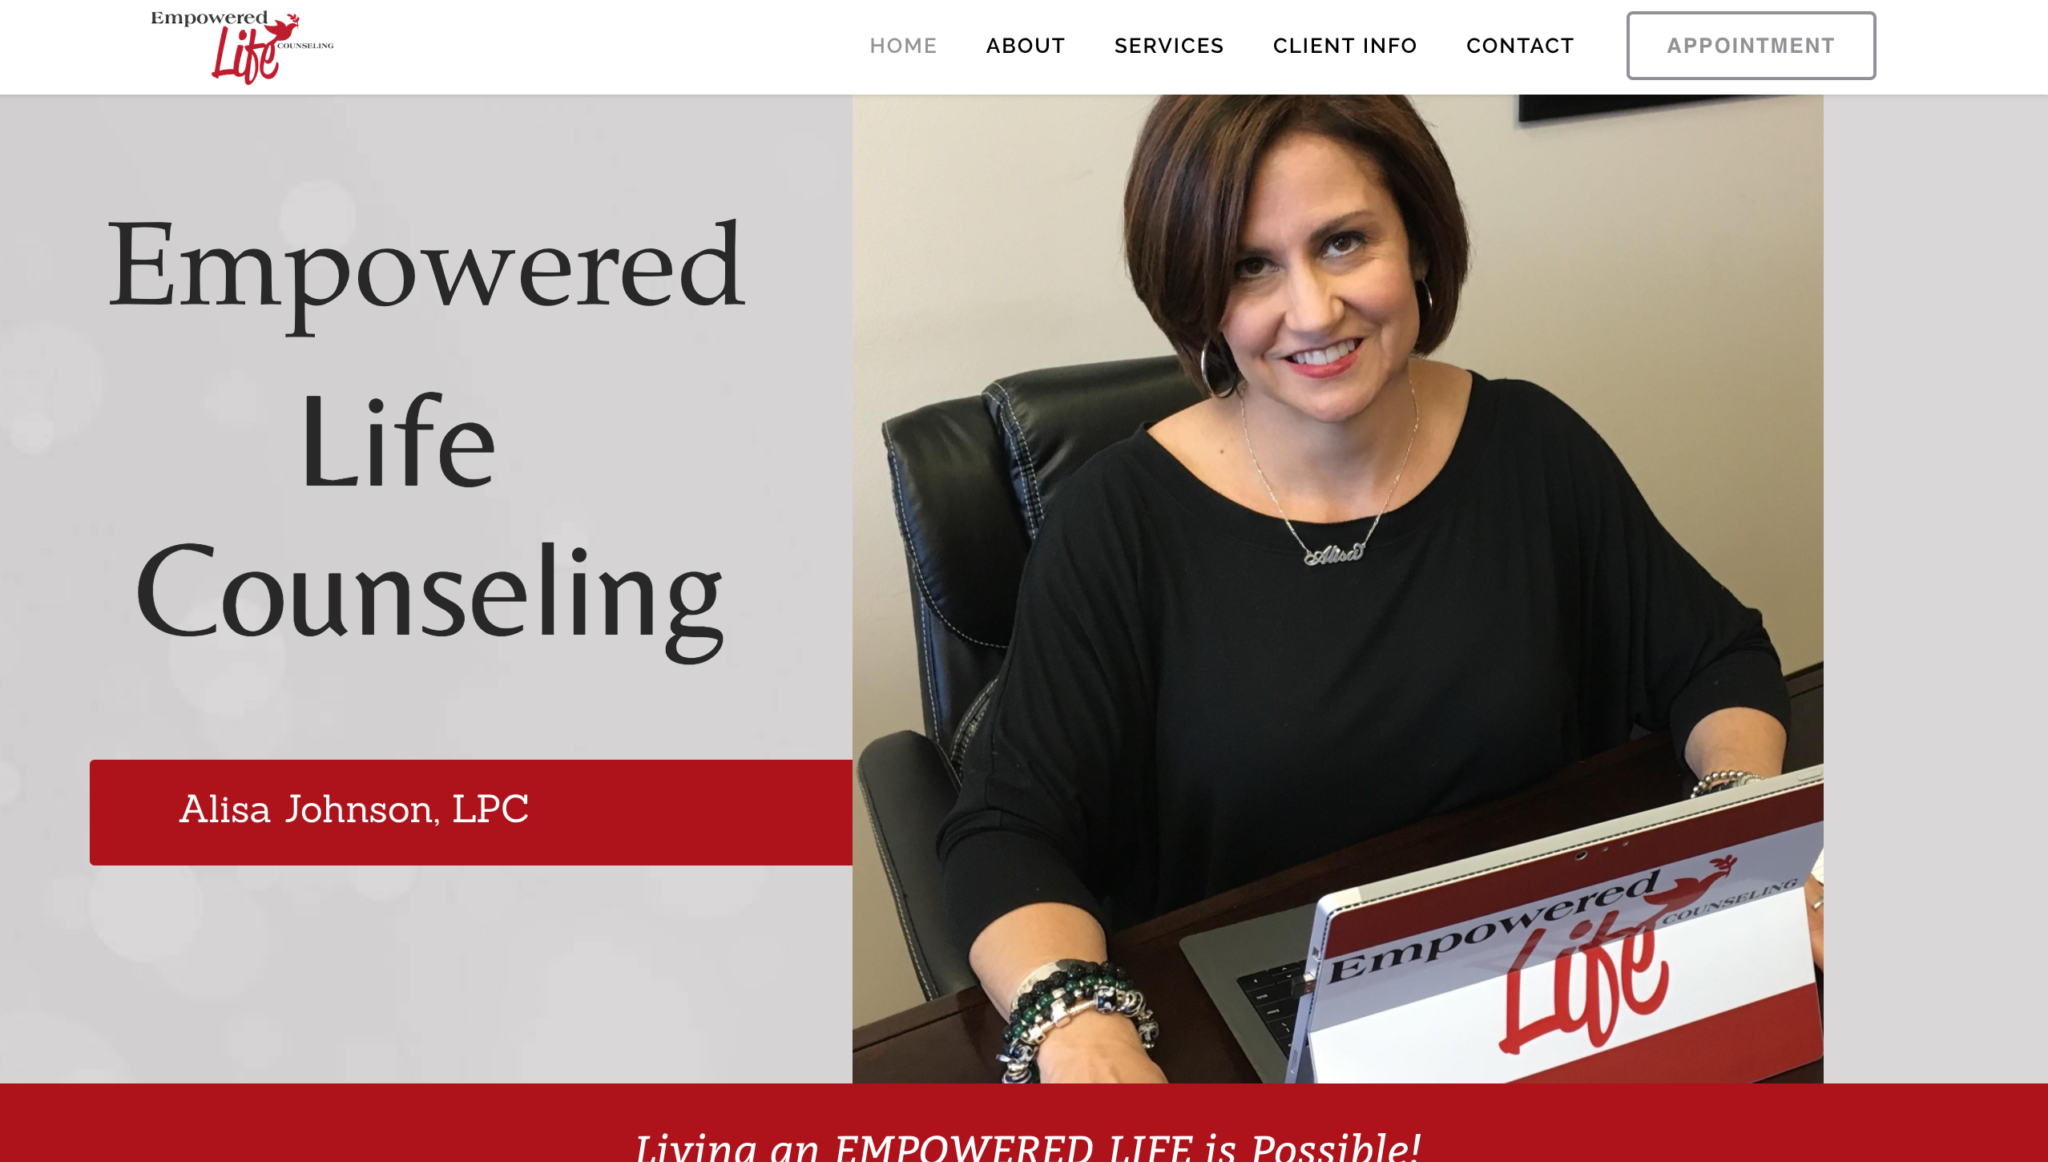 Empowered Life Counseling - McWilliams Media   Web Design   Broken ...